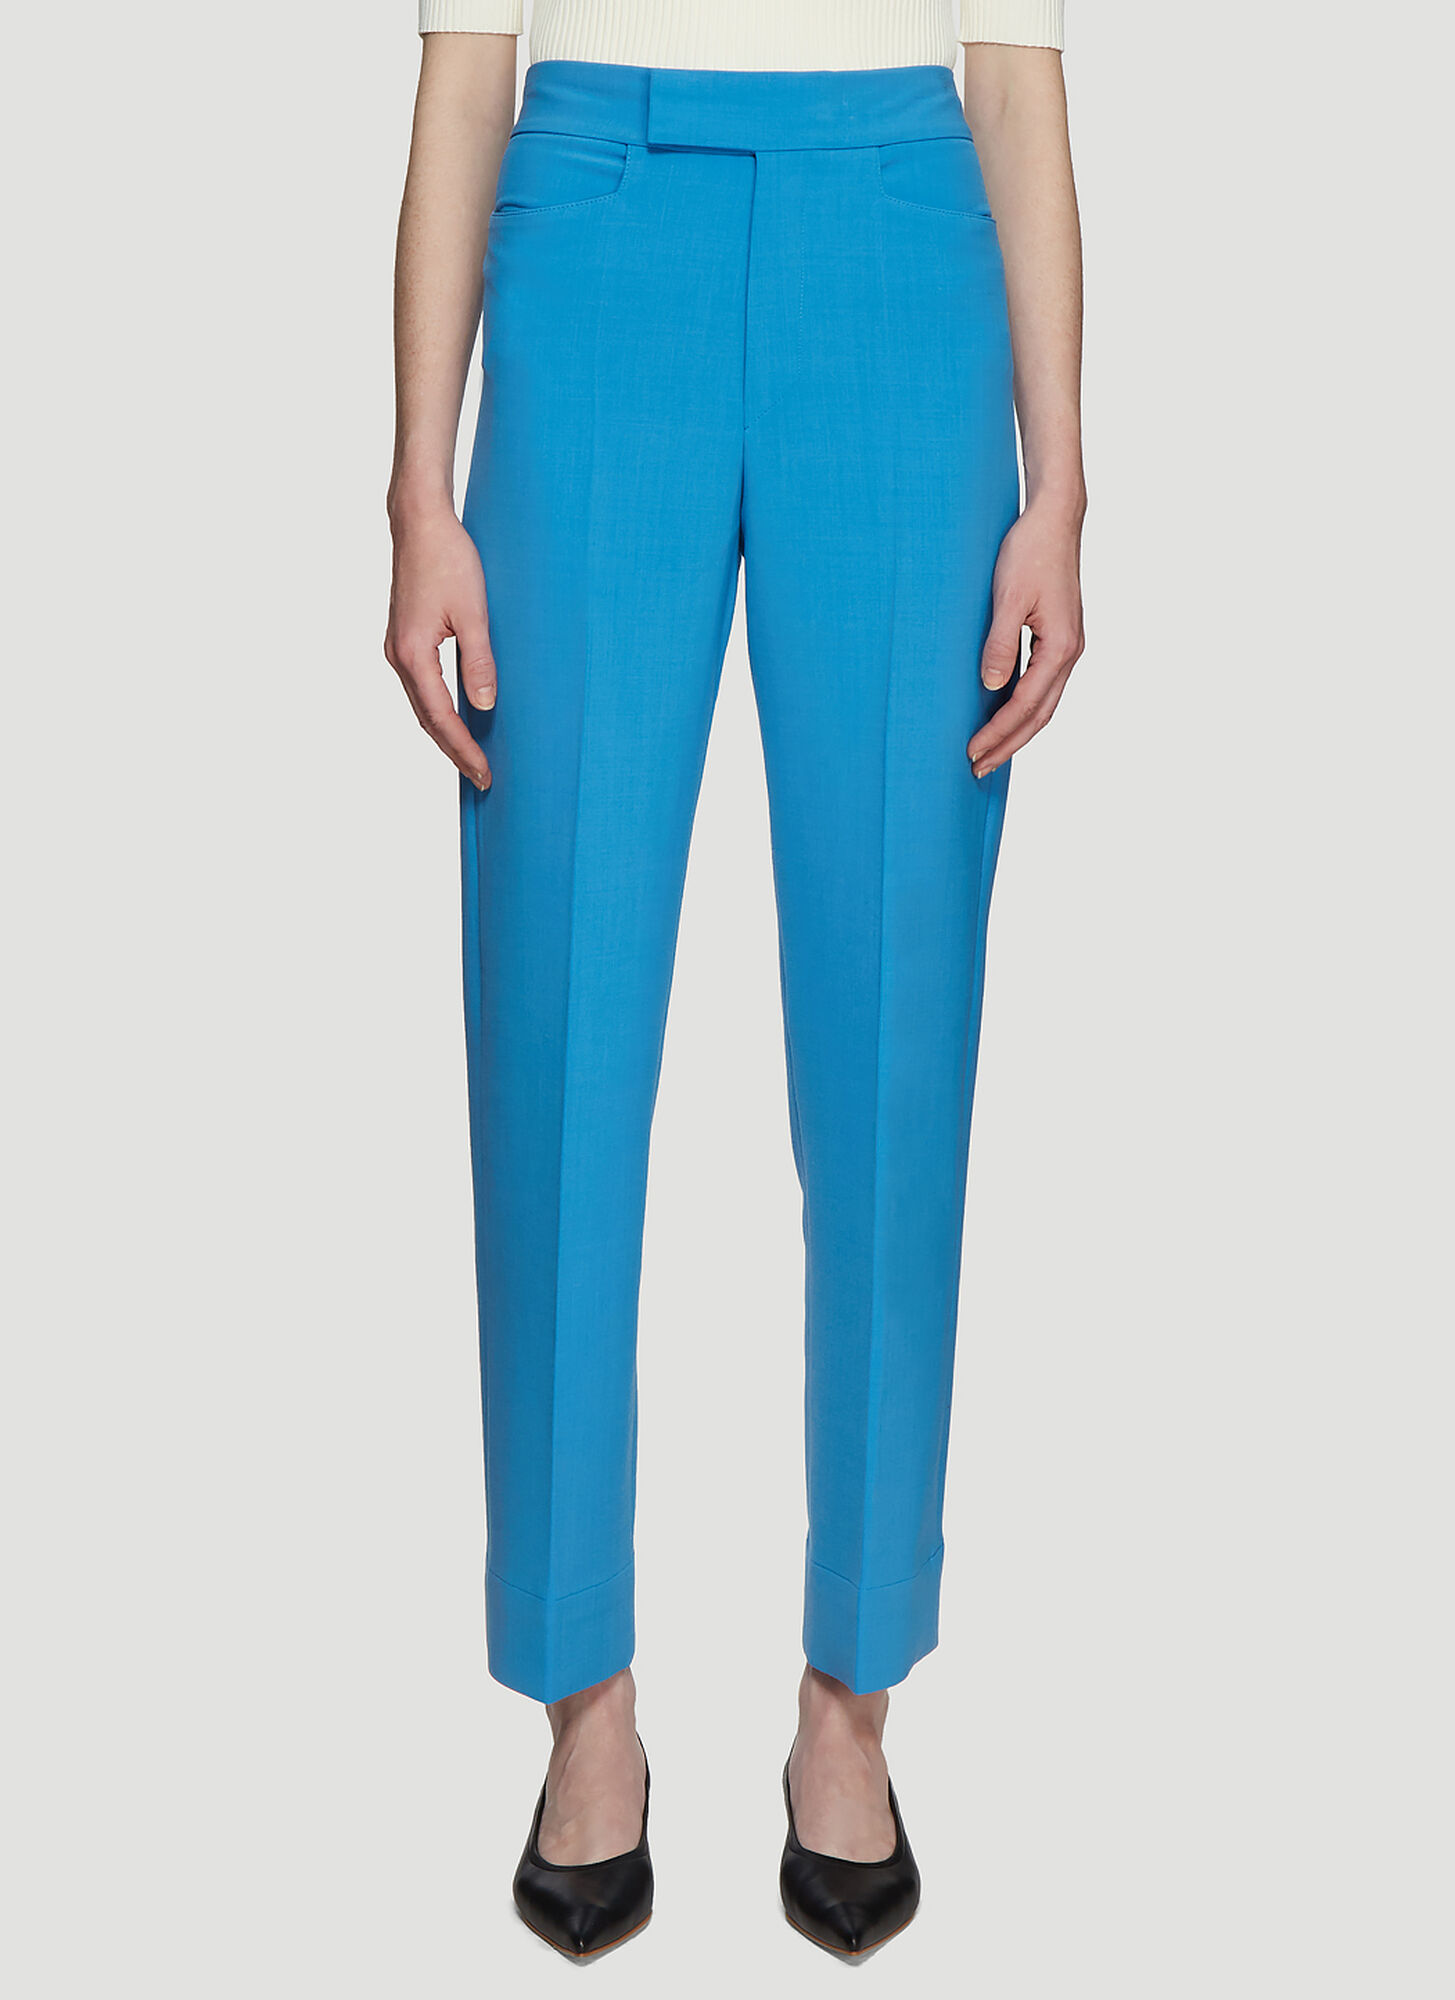 Kwaidan Editions Straight Leg Pants in Blue